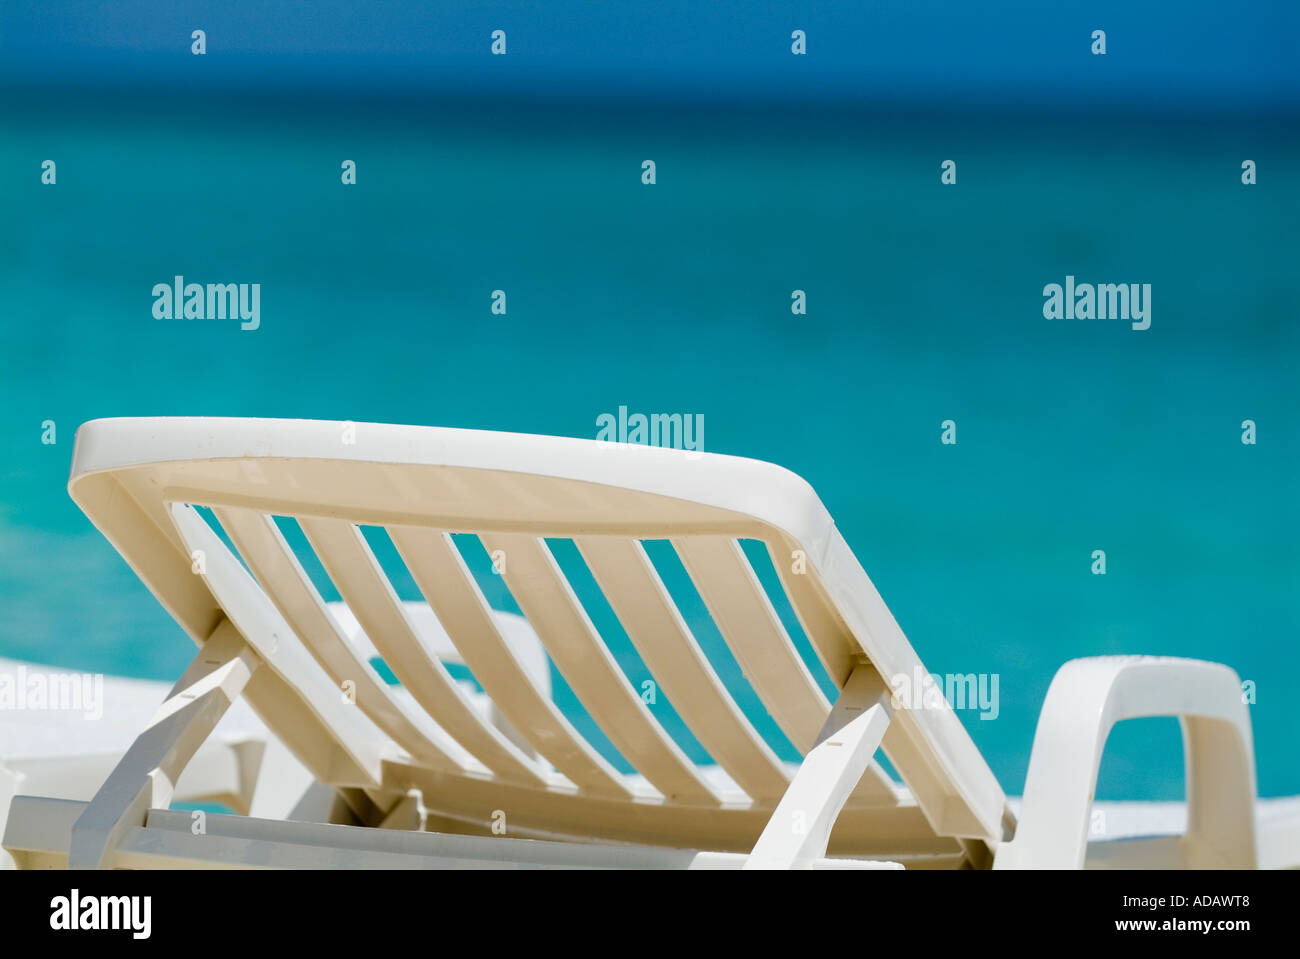 Empty white deck chair / sun lounger on a tropical beach with bright blue ocean - Stock Image